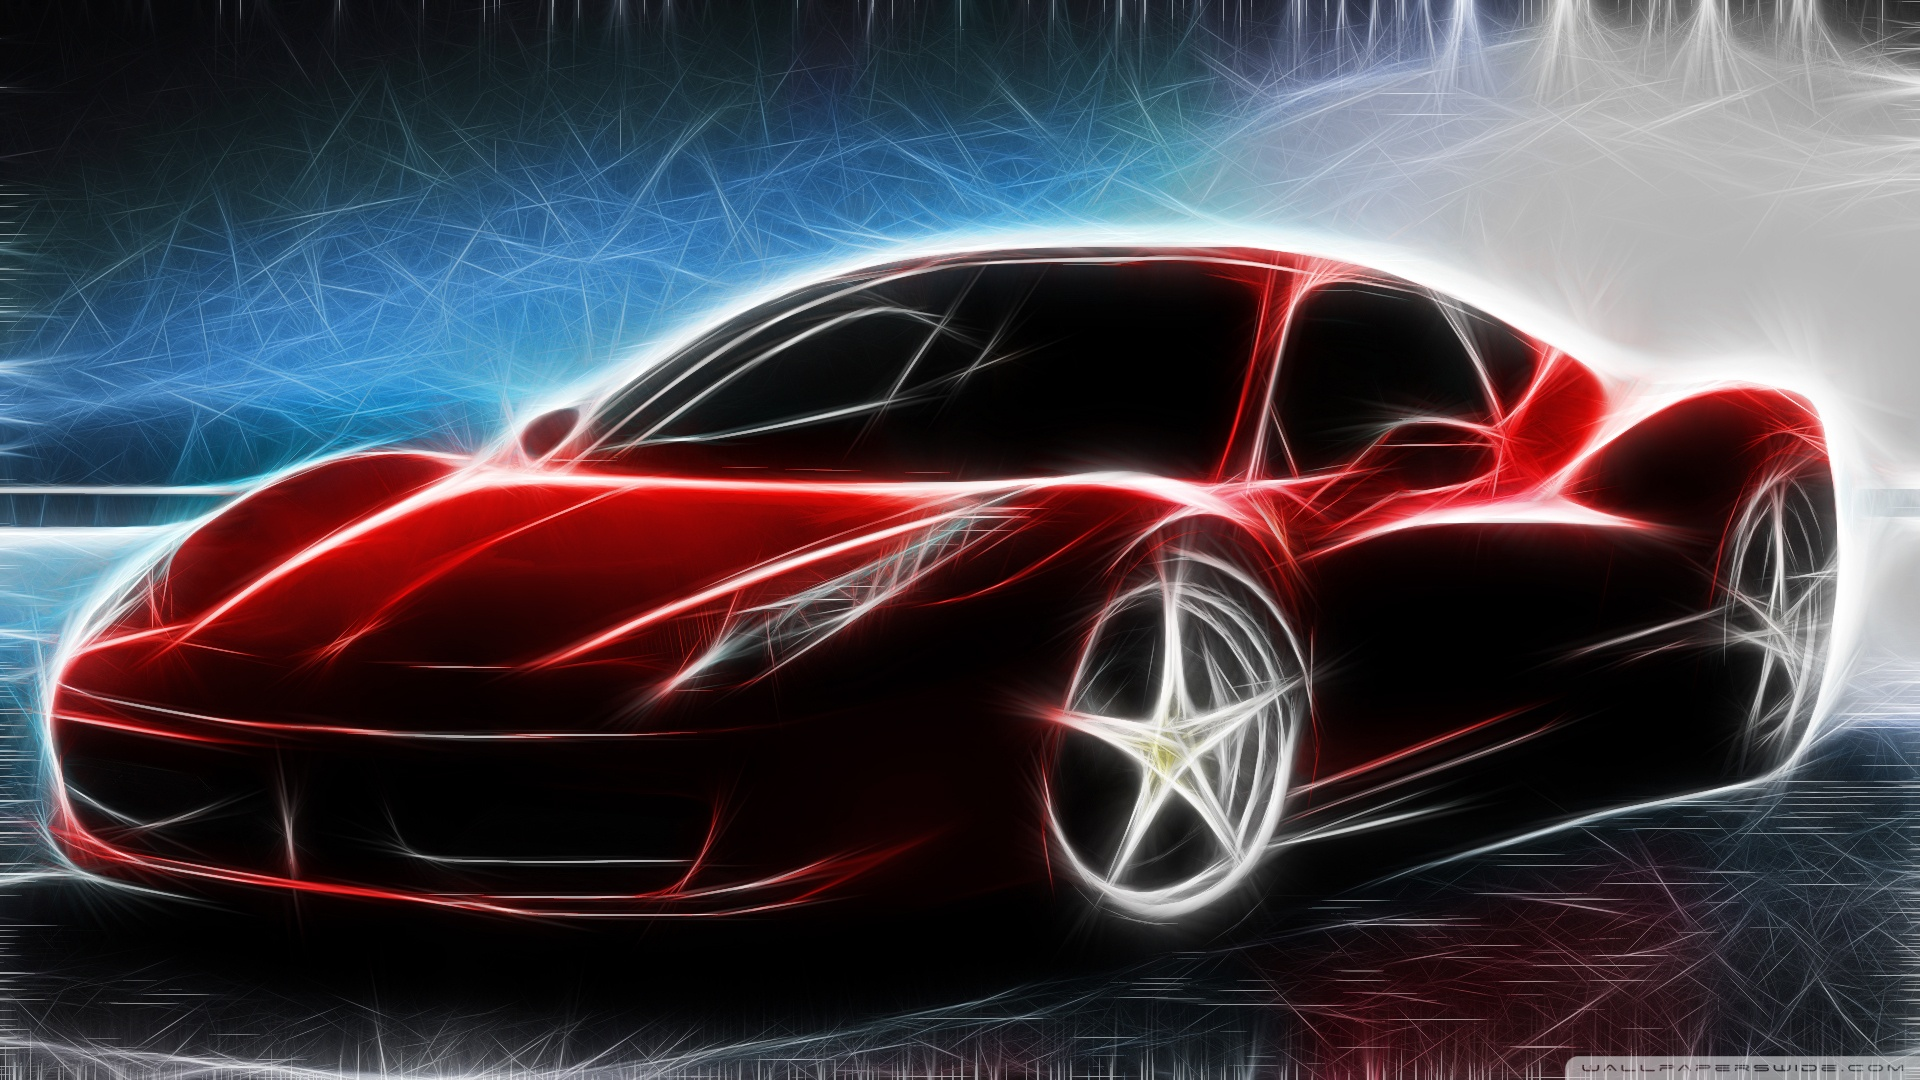 ferrari wallpaper | 1920x1080 | #41346